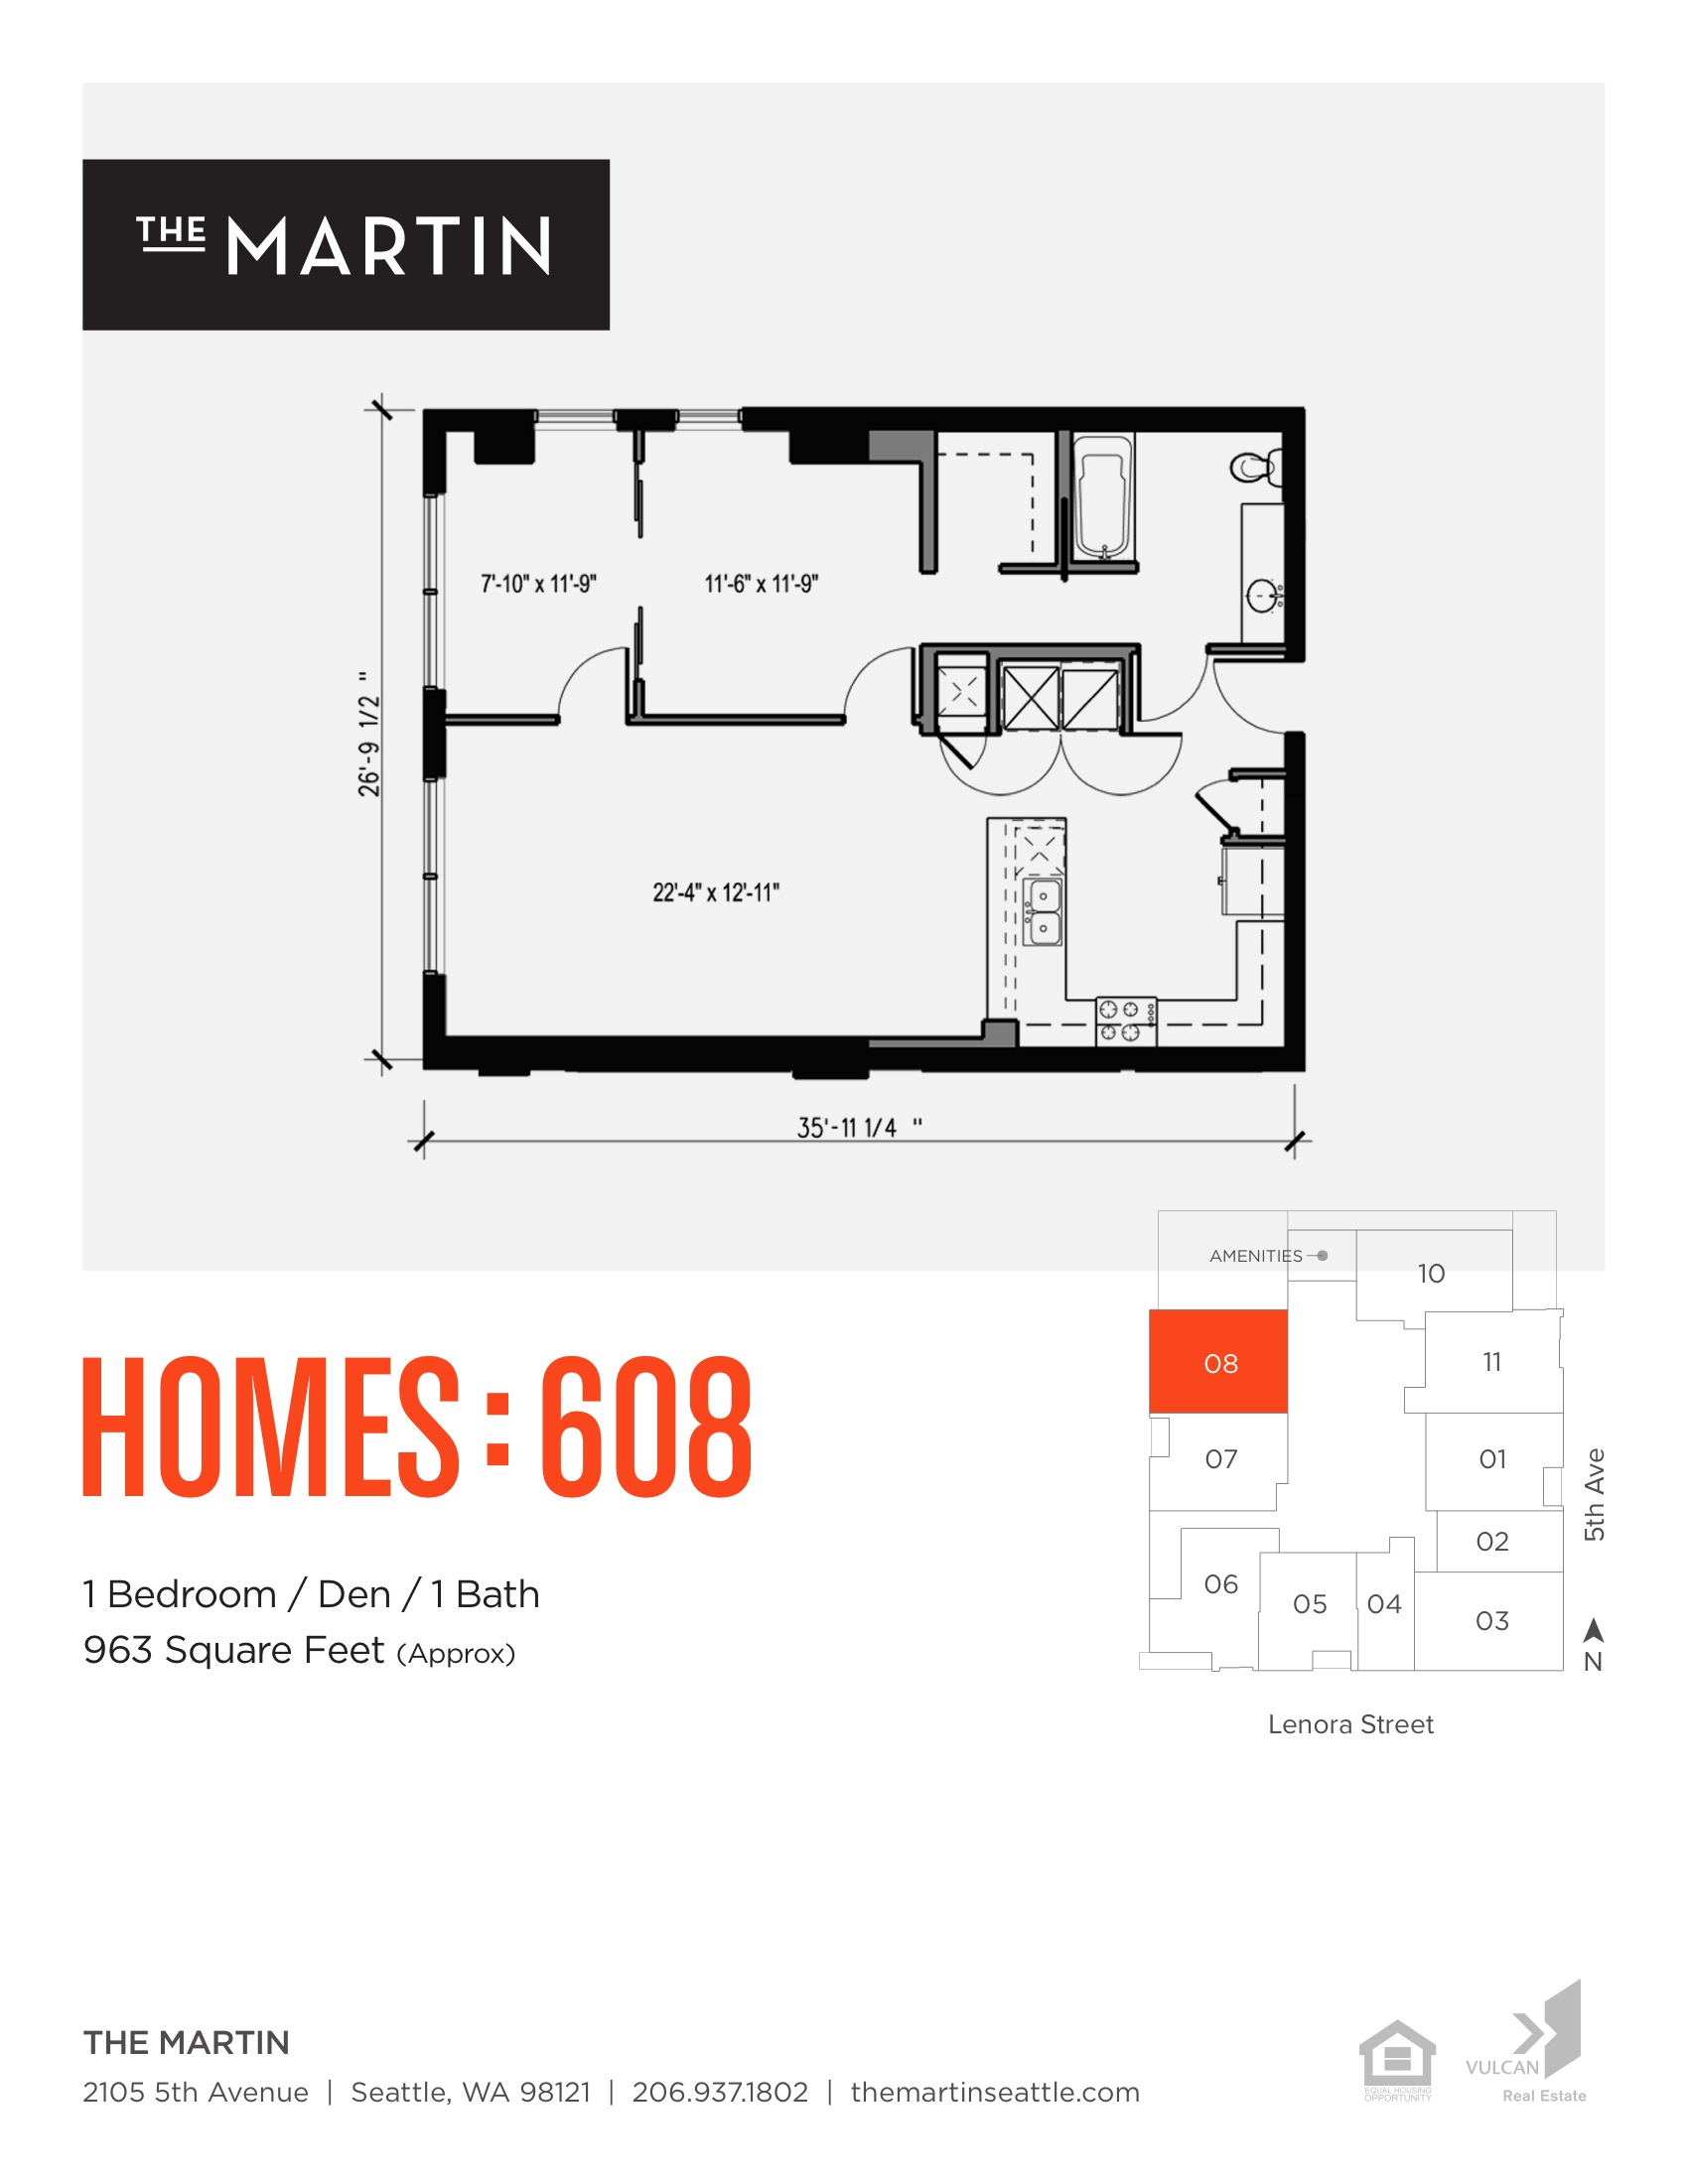 Location Map besides 578f5e3de58ece8e870000bb Grow Box Merge Architects Floor Plan moreover 4210 Sf together with Floor plans main in addition 517706deb3fc4b3669000012 Eight Office  plex People Plan. on floor plans